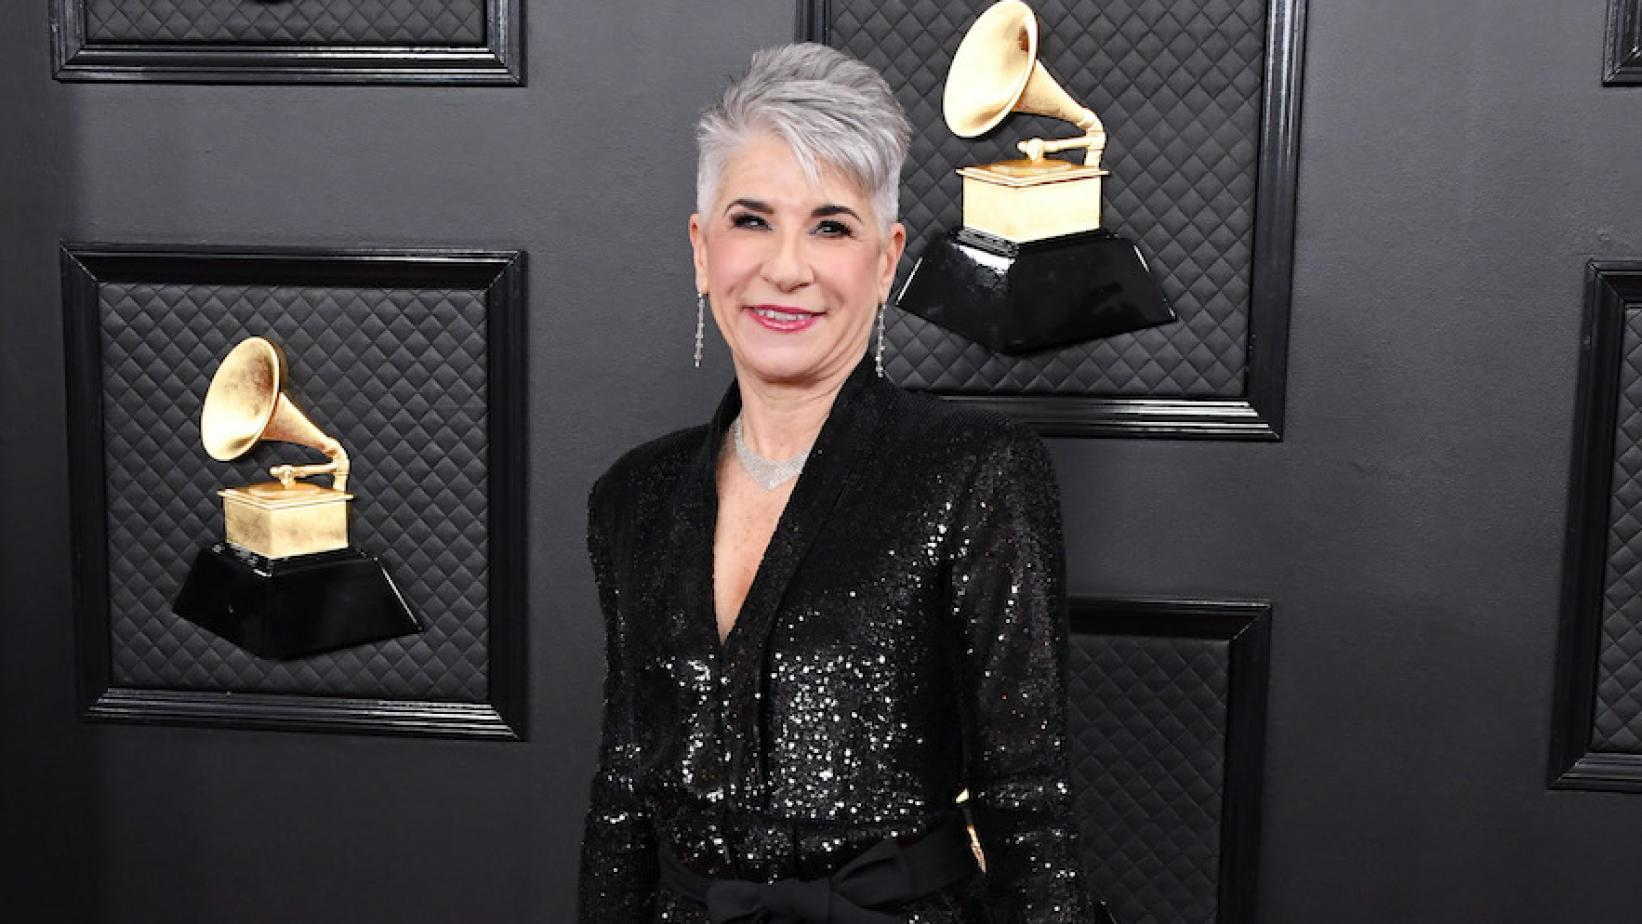 Photo of Elaine Martone at the 62nd GRAMMY Awards in 2020